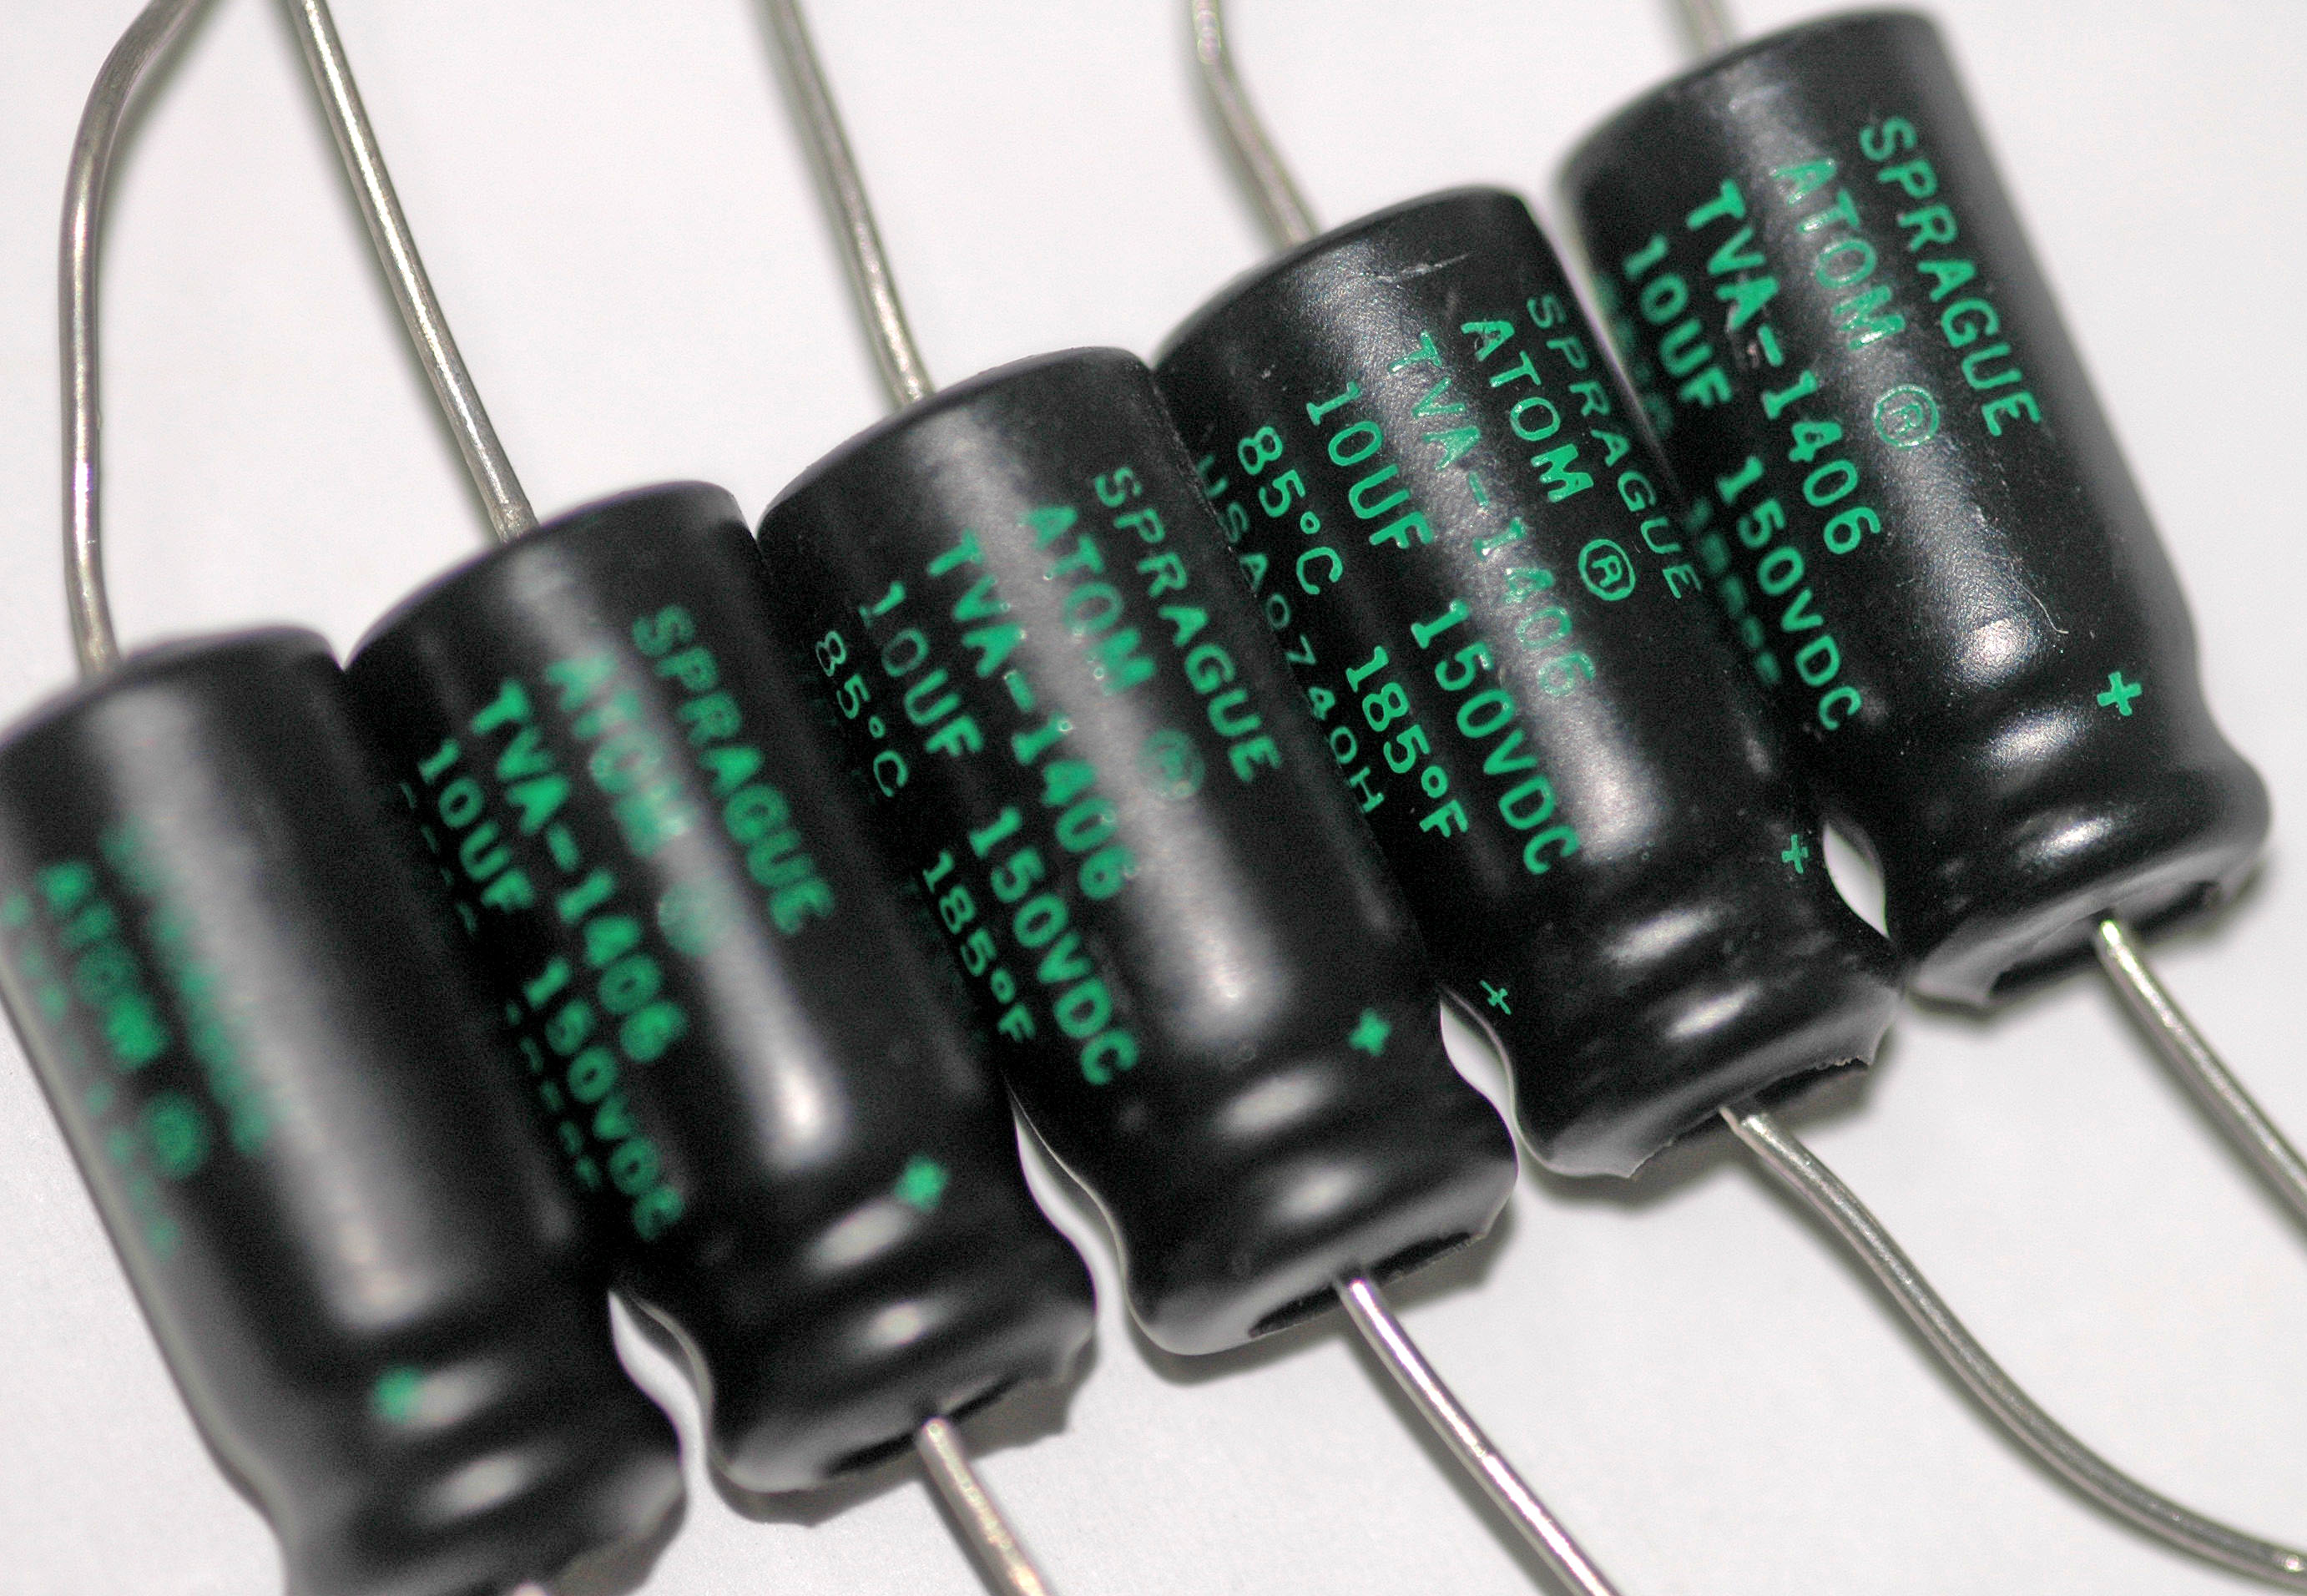 https://i0.wp.com/upload.wikimedia.org/wikipedia/commons/b/b4/Axial_electrolytic_capacitors.jpg